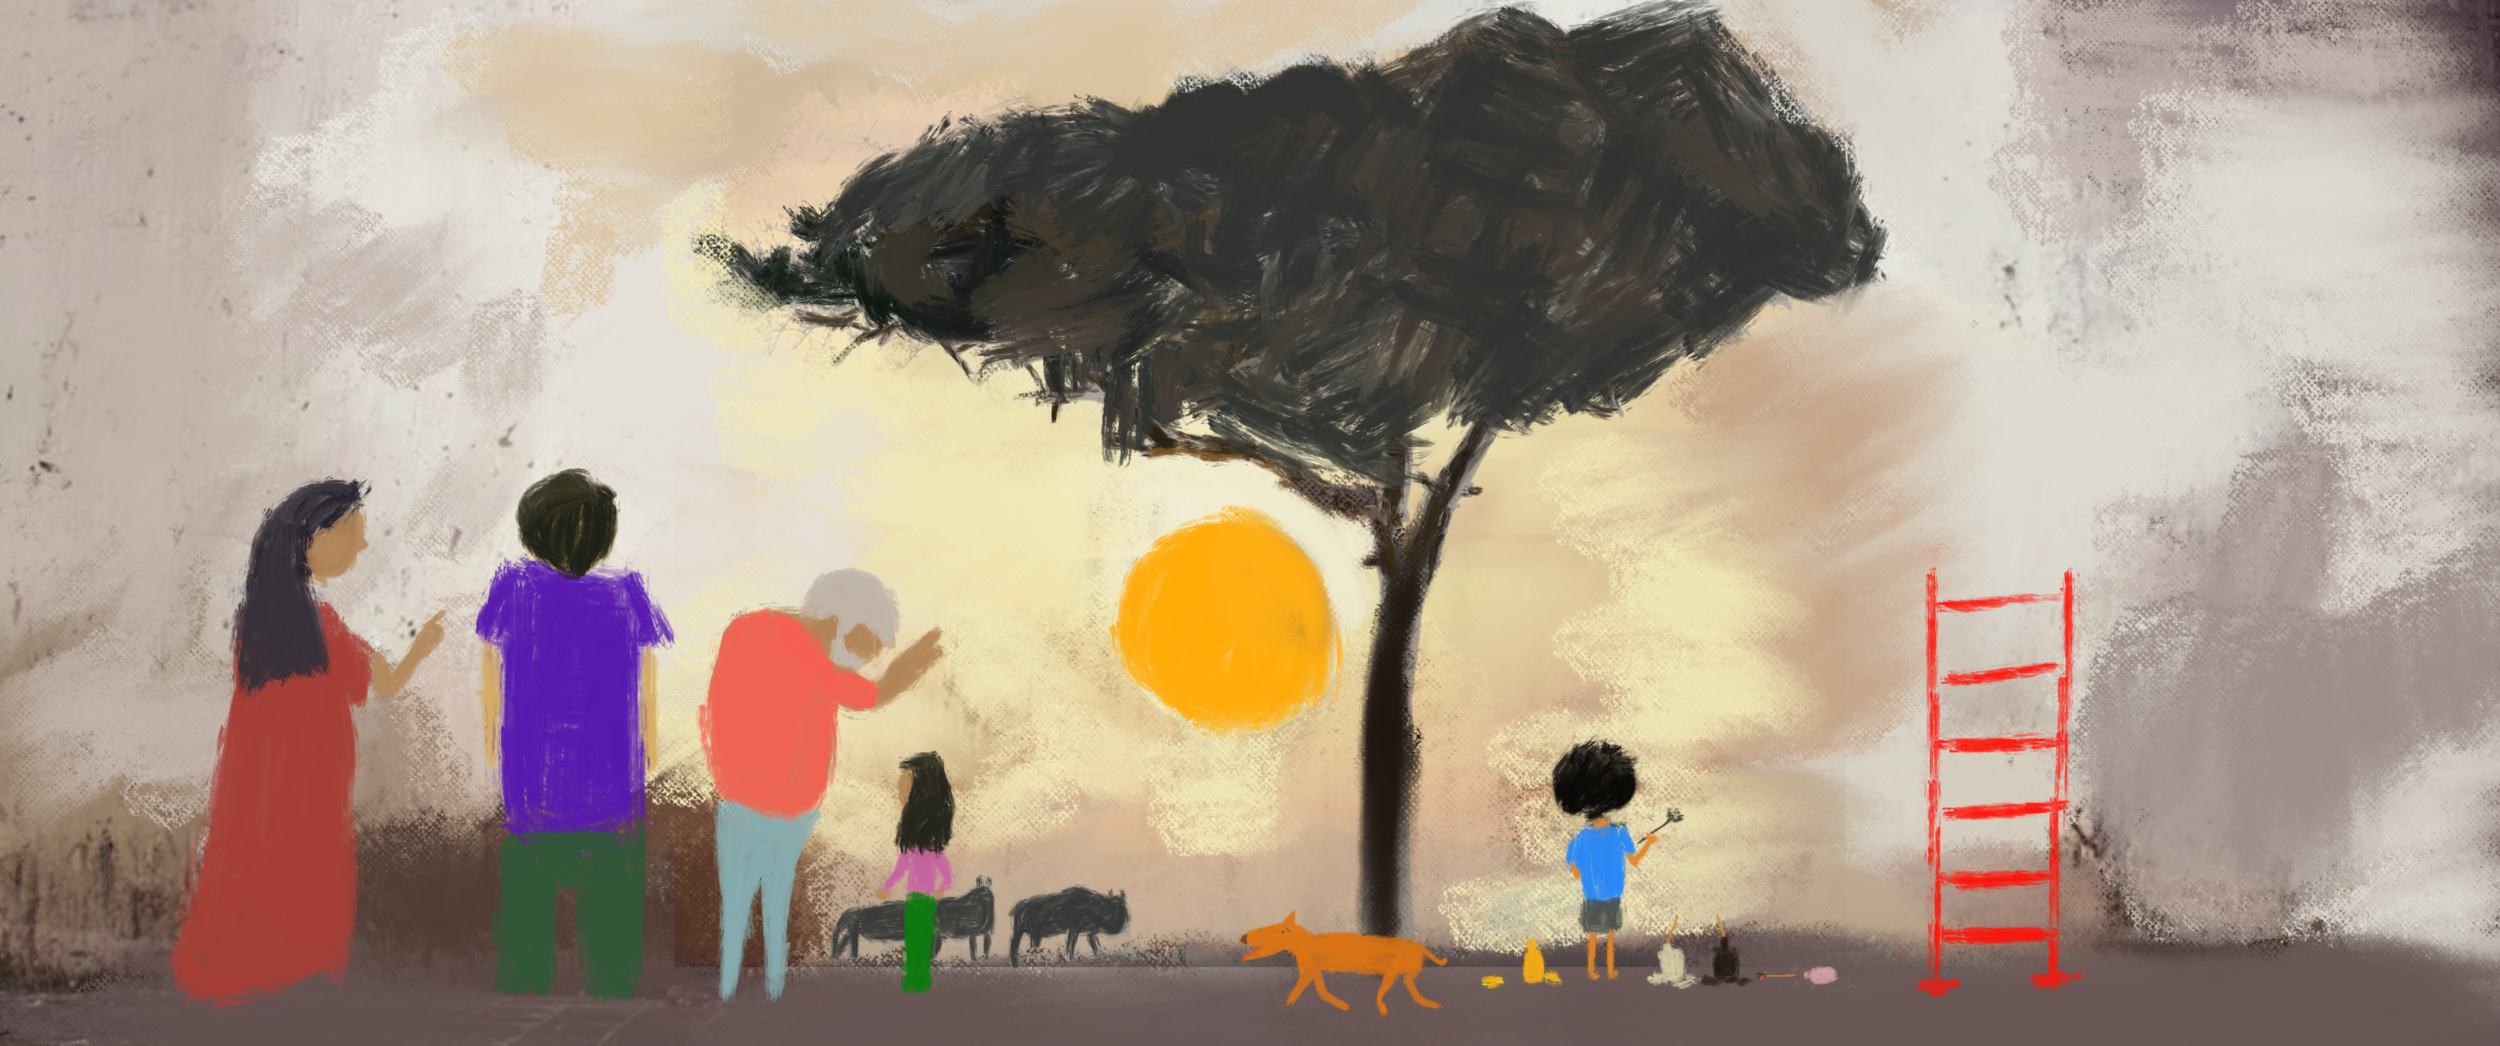 Boy_and_the_tree_7.png